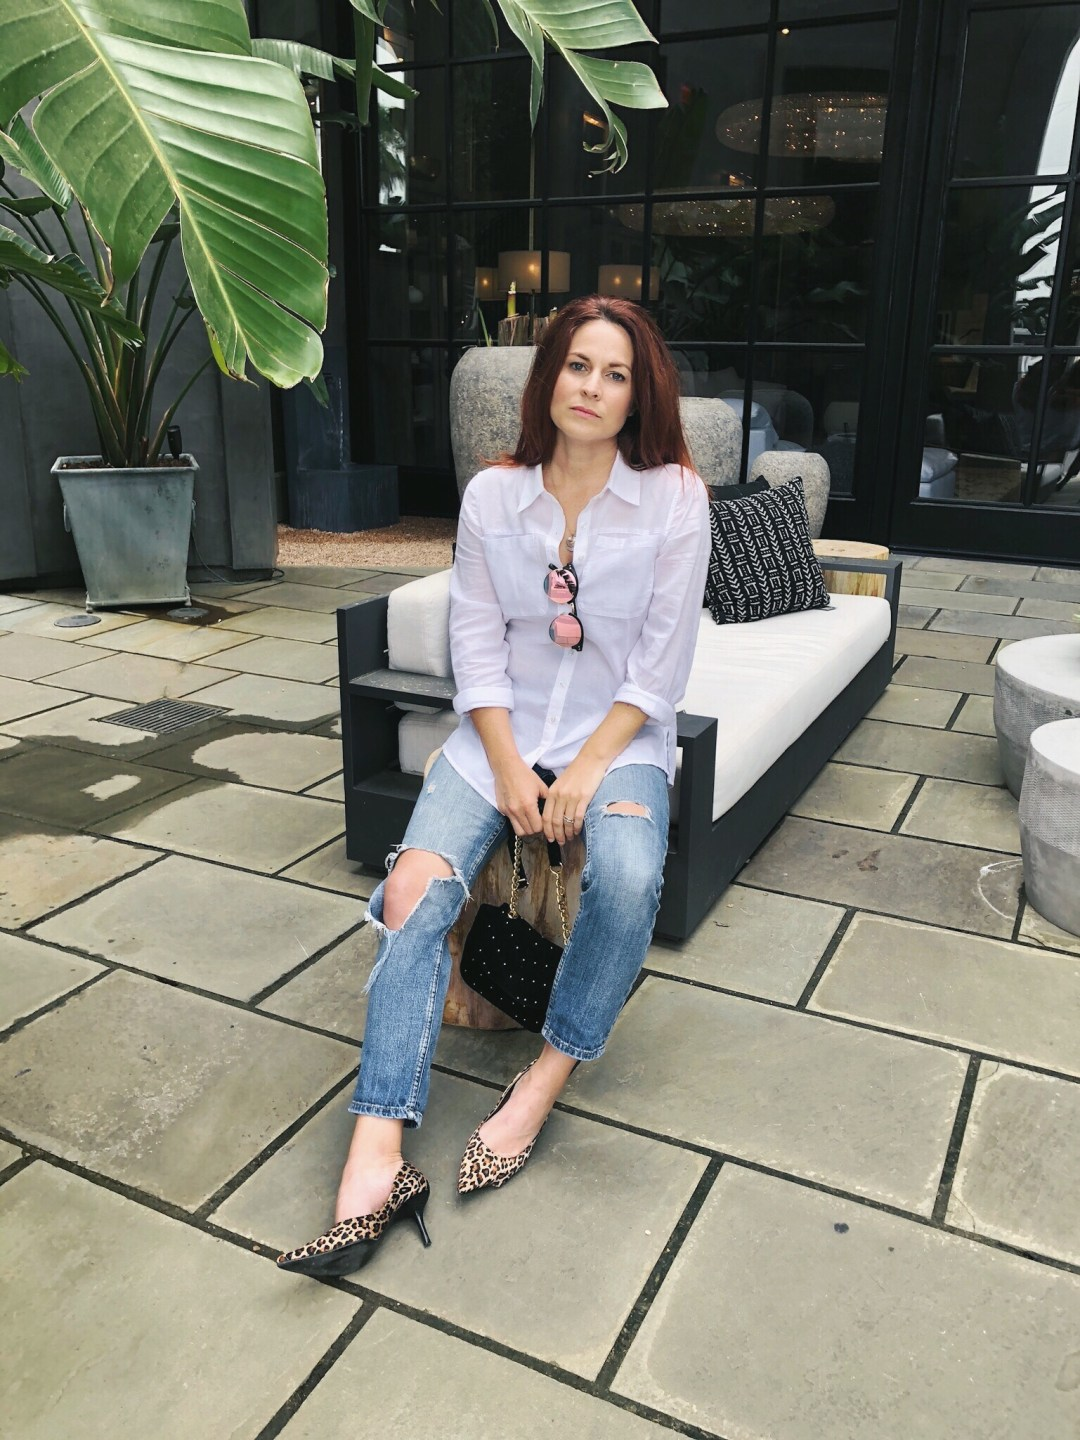 style basics, white button down shirt, distressed jeans, leopard heels, casual style